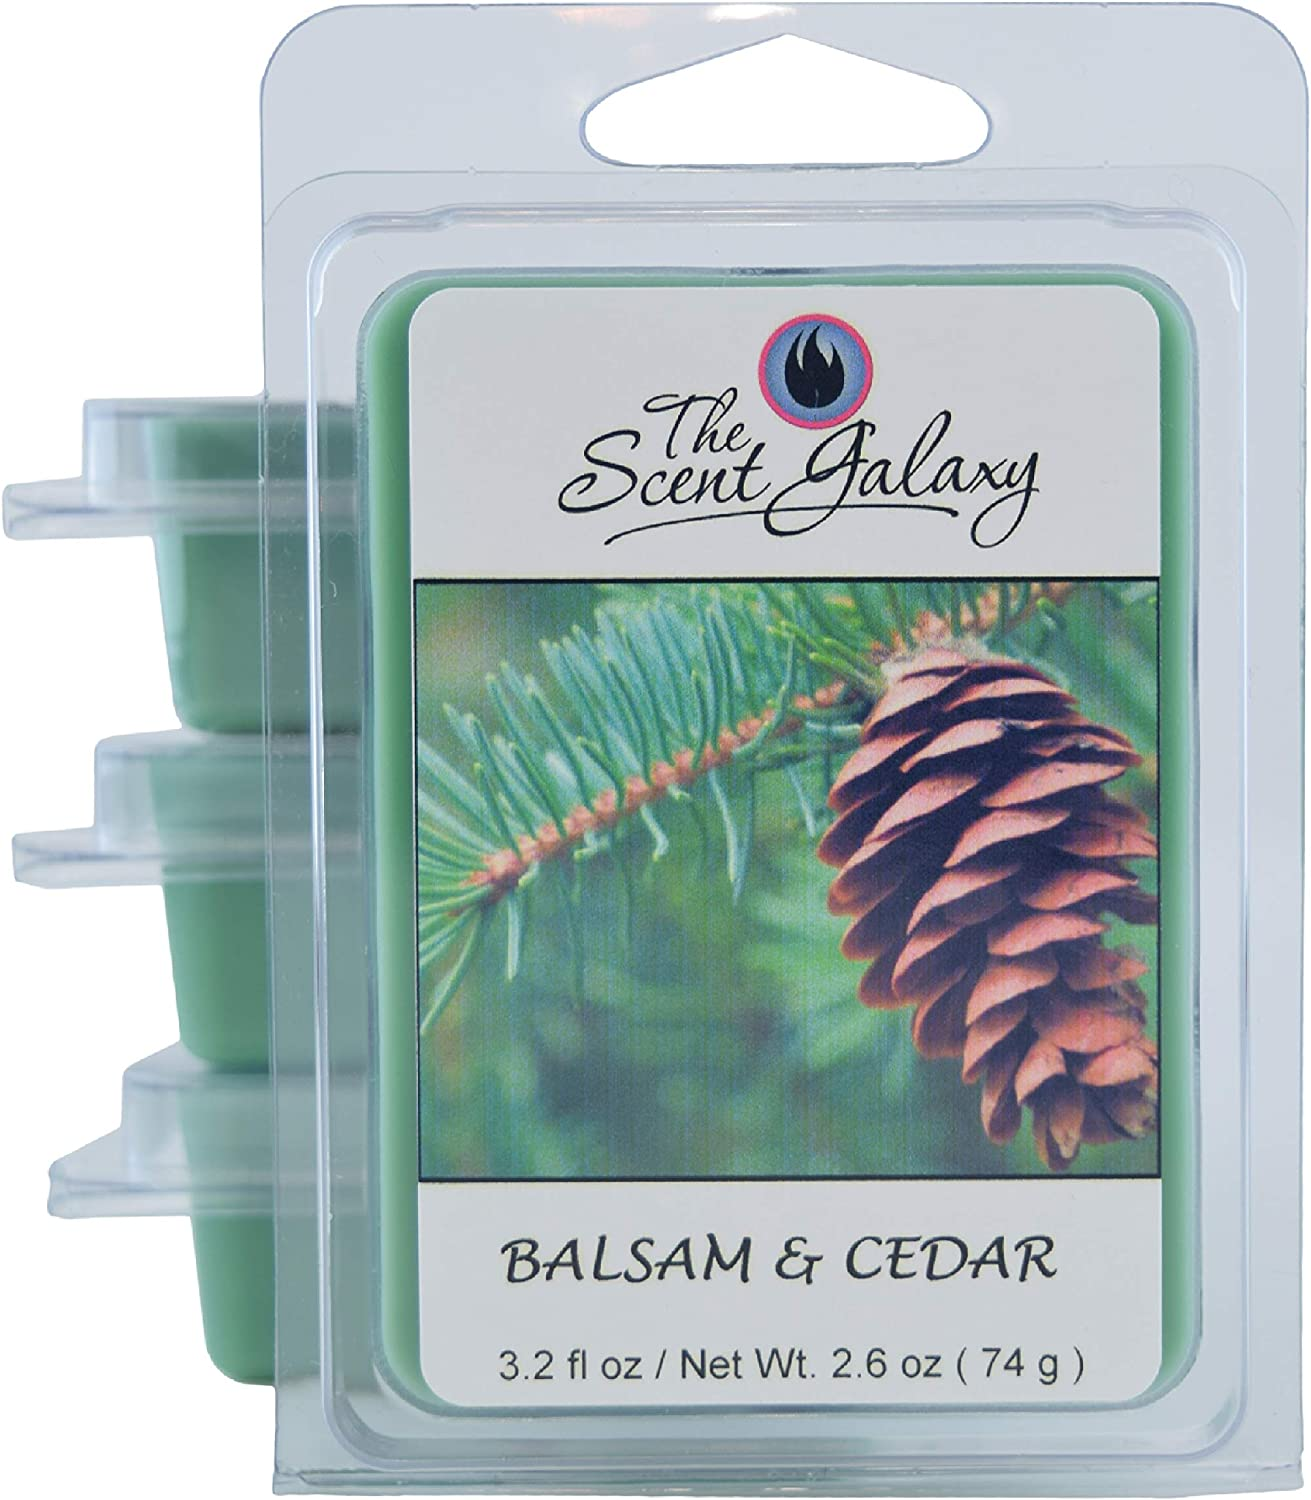 The Scent Galaxy Balsam & Cedar Wax Melts - Highly Scented Wax Melts - Long Lasting Aroma - Pure and Natural - Hand Poured - 2 Pack of 6